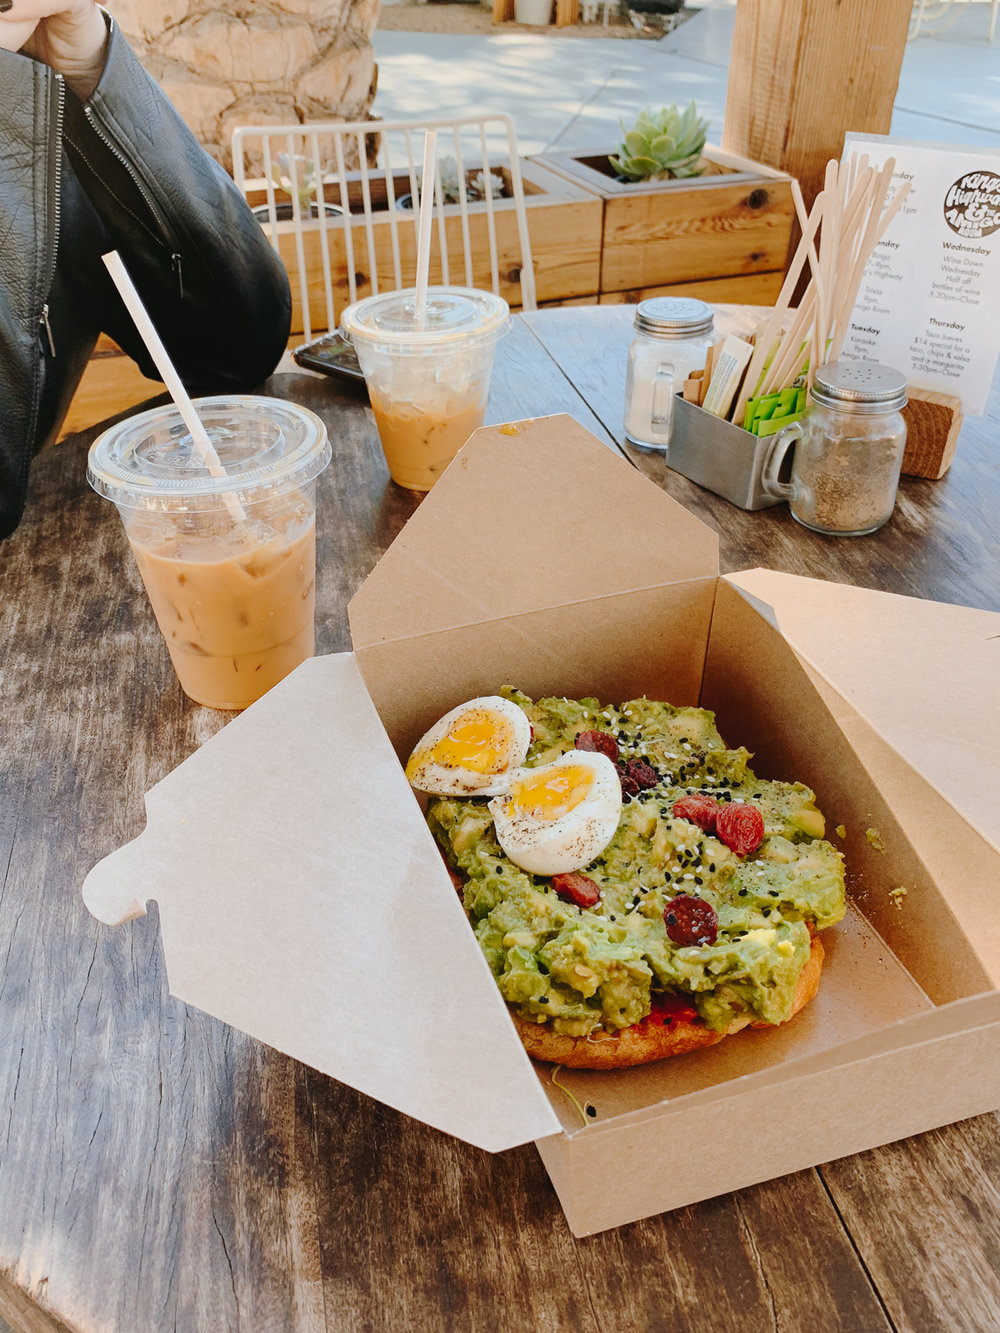 ace_hotel_palm_springs_avocado_toast.jpg